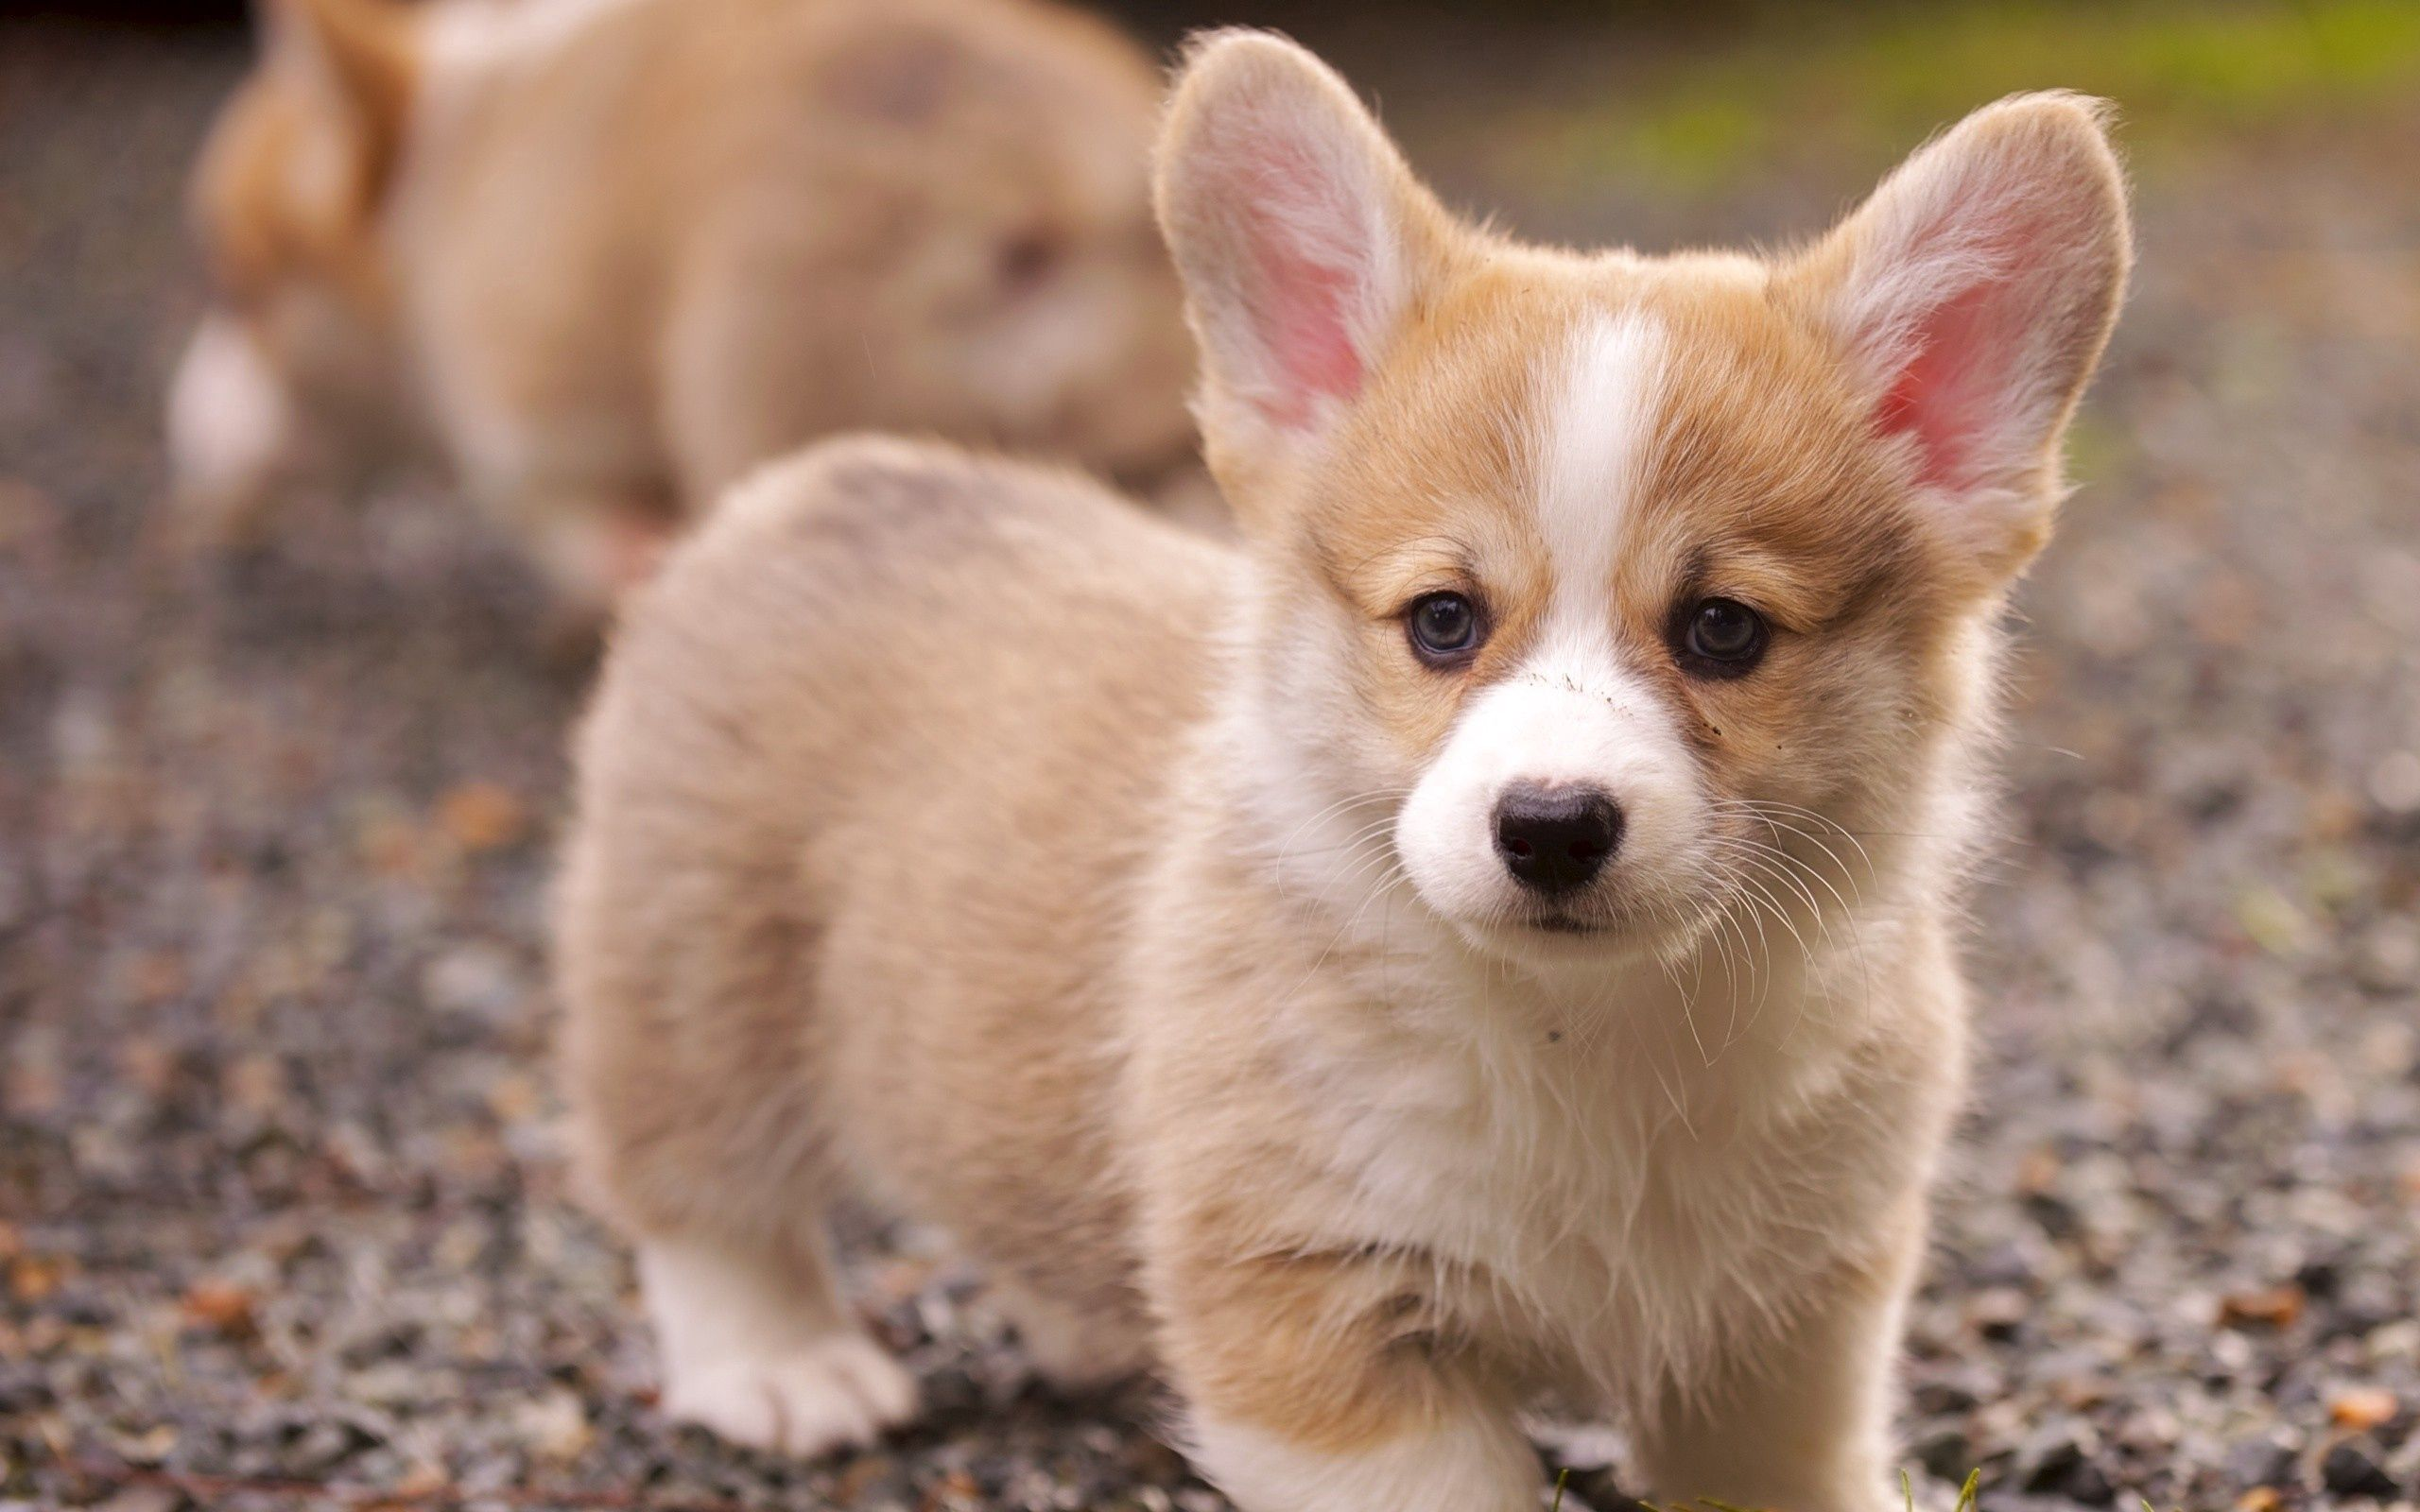 61214 download wallpaper Animals, Puppy, Muzzle, Sight, Opinion, Grass, Ears screensavers and pictures for free